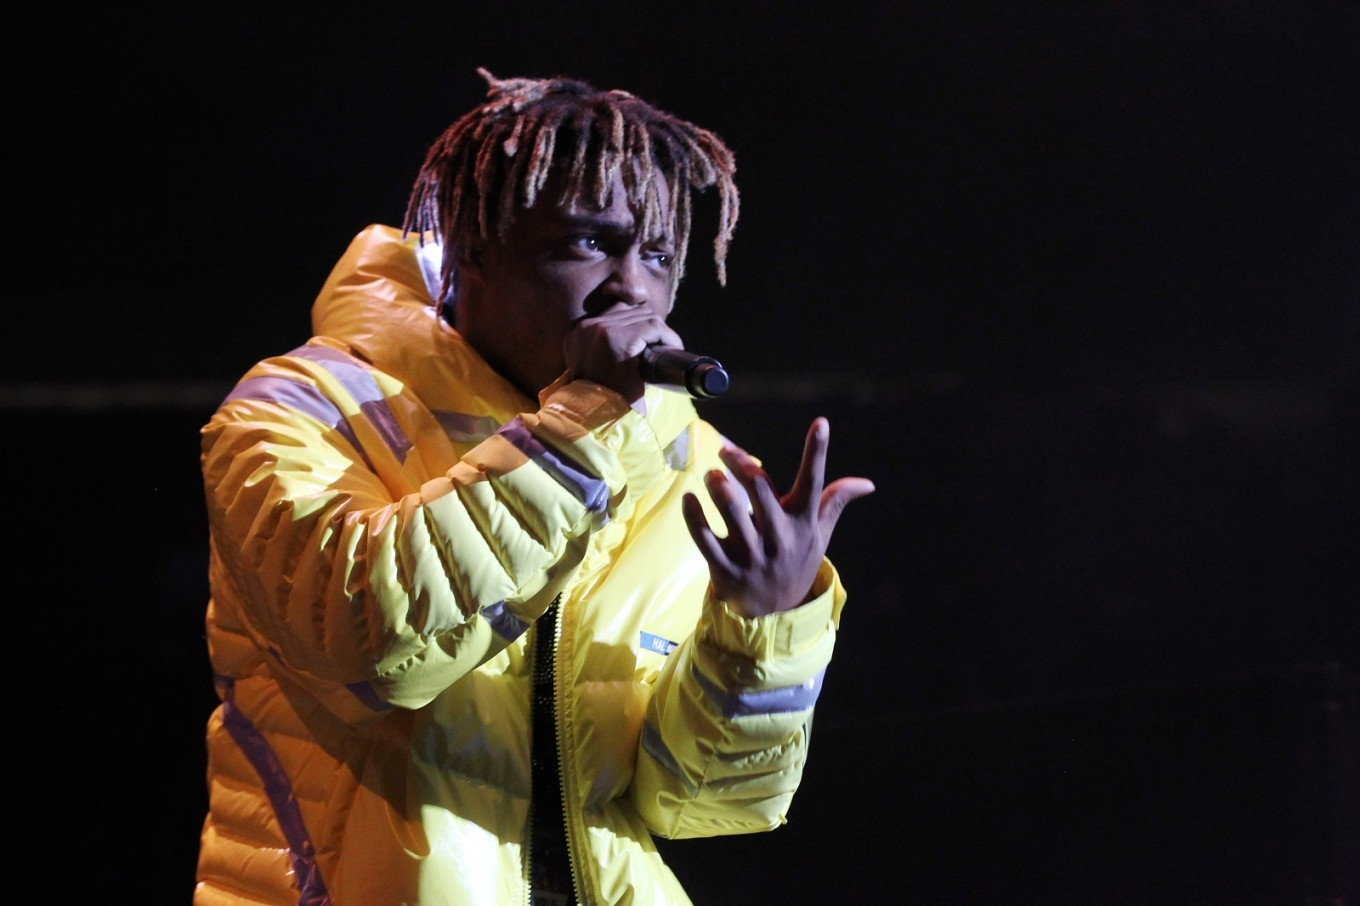 Rising US rap artist Juice WRLD dies at 21